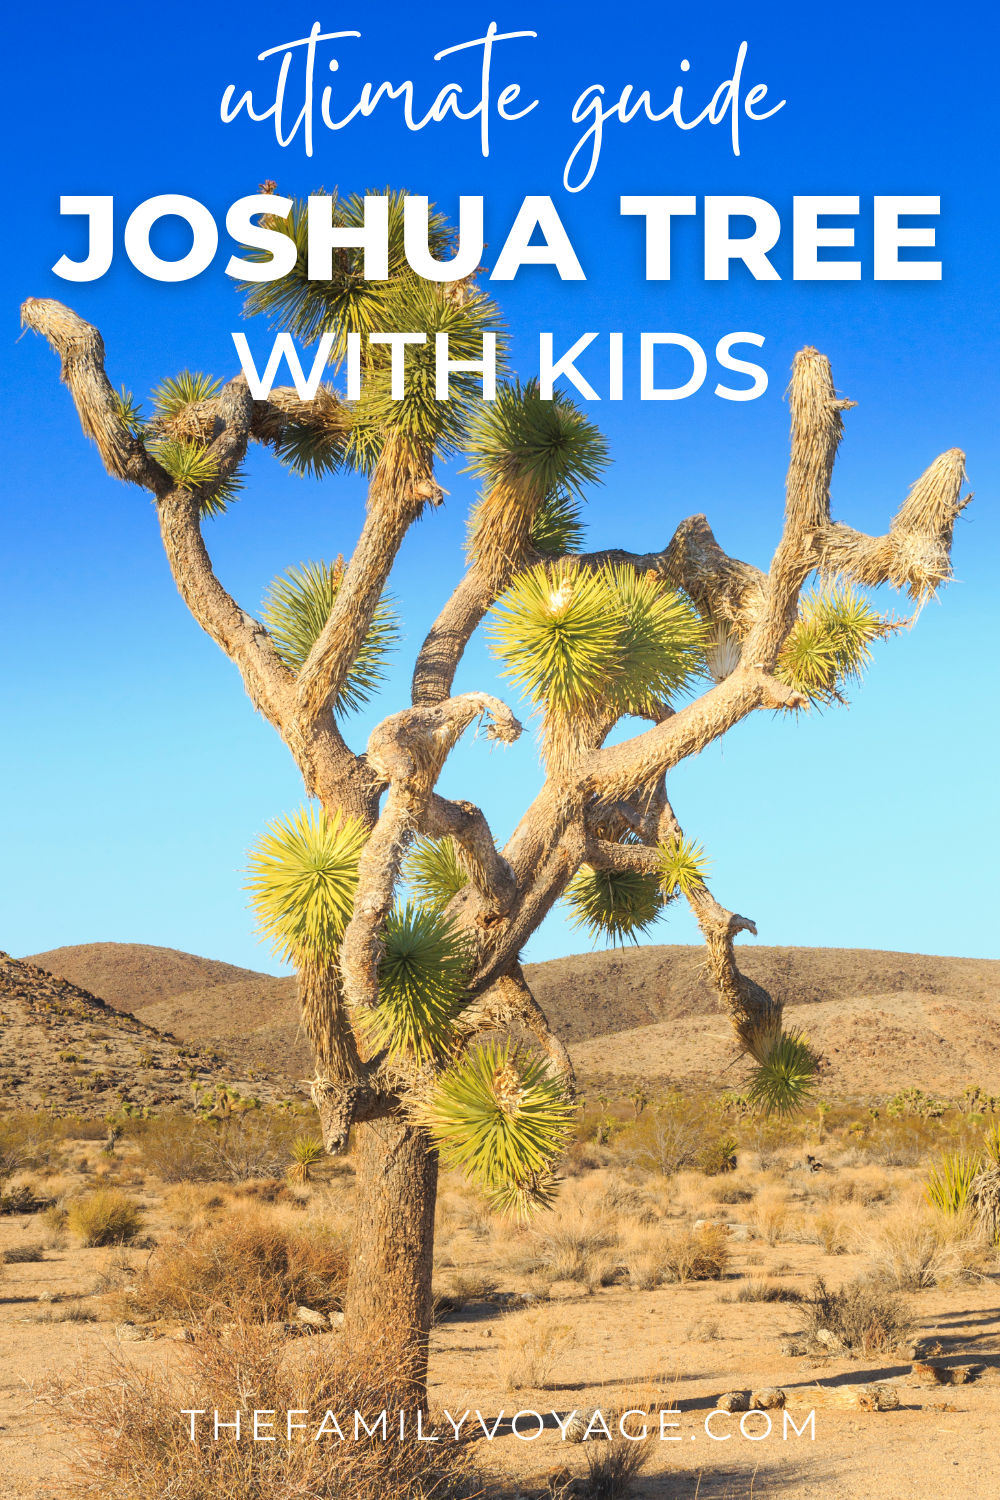 Best Hikes In Joshua Tree National Park Visiting Joshua Tree With Kids In 2021 National Parks Trip Southwest Usa Travel California Travel Road Trips